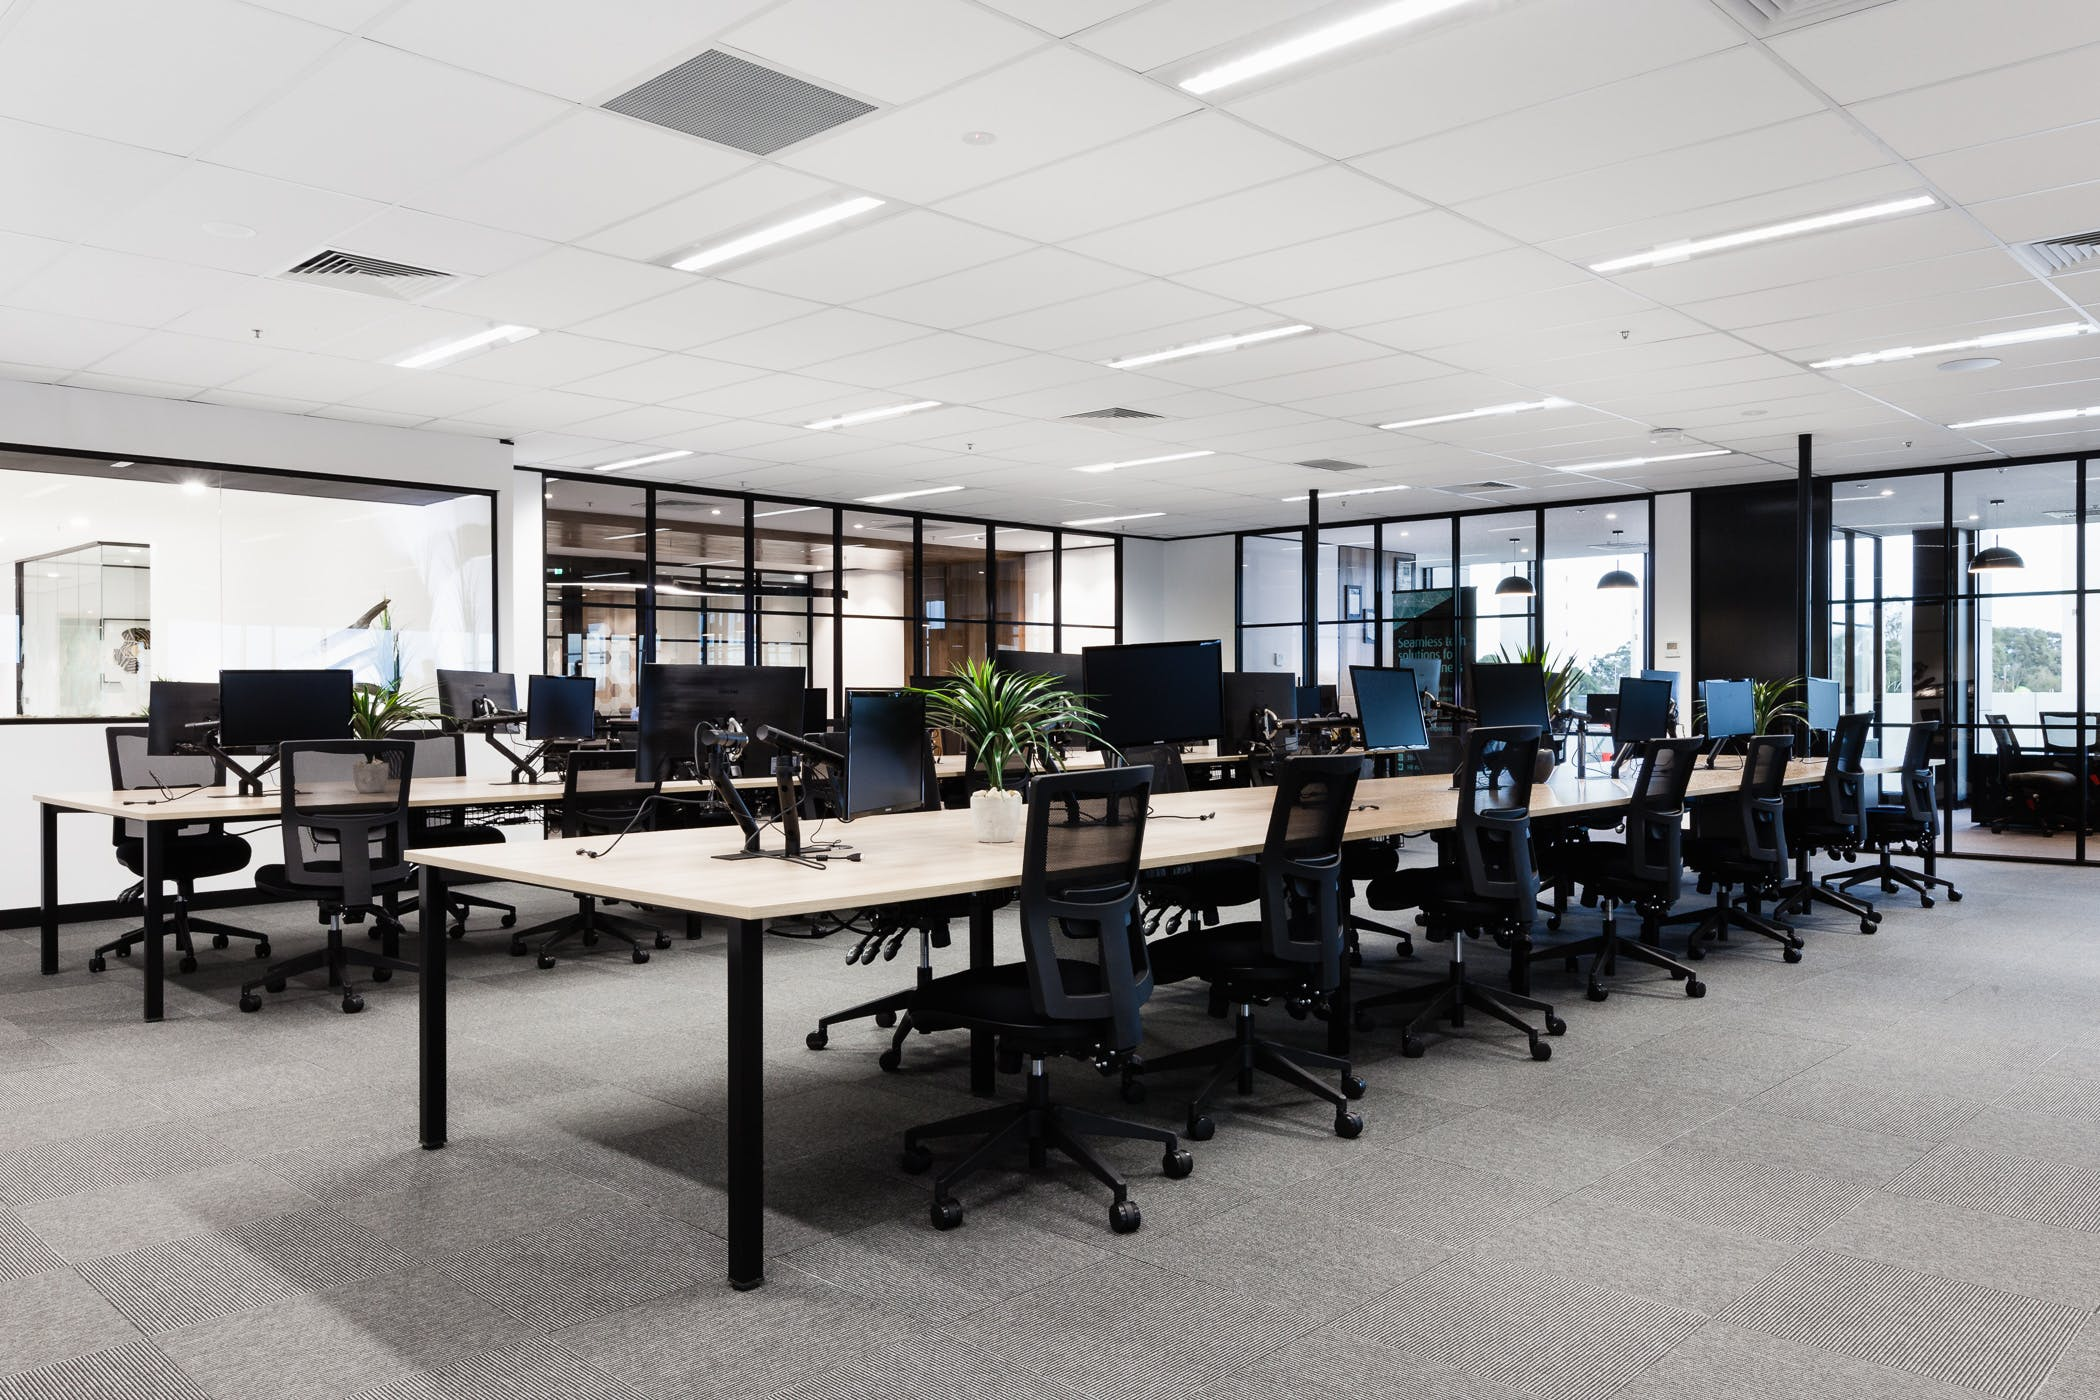 Suite 1, serviced office at Waterman Narre Warren, image 1